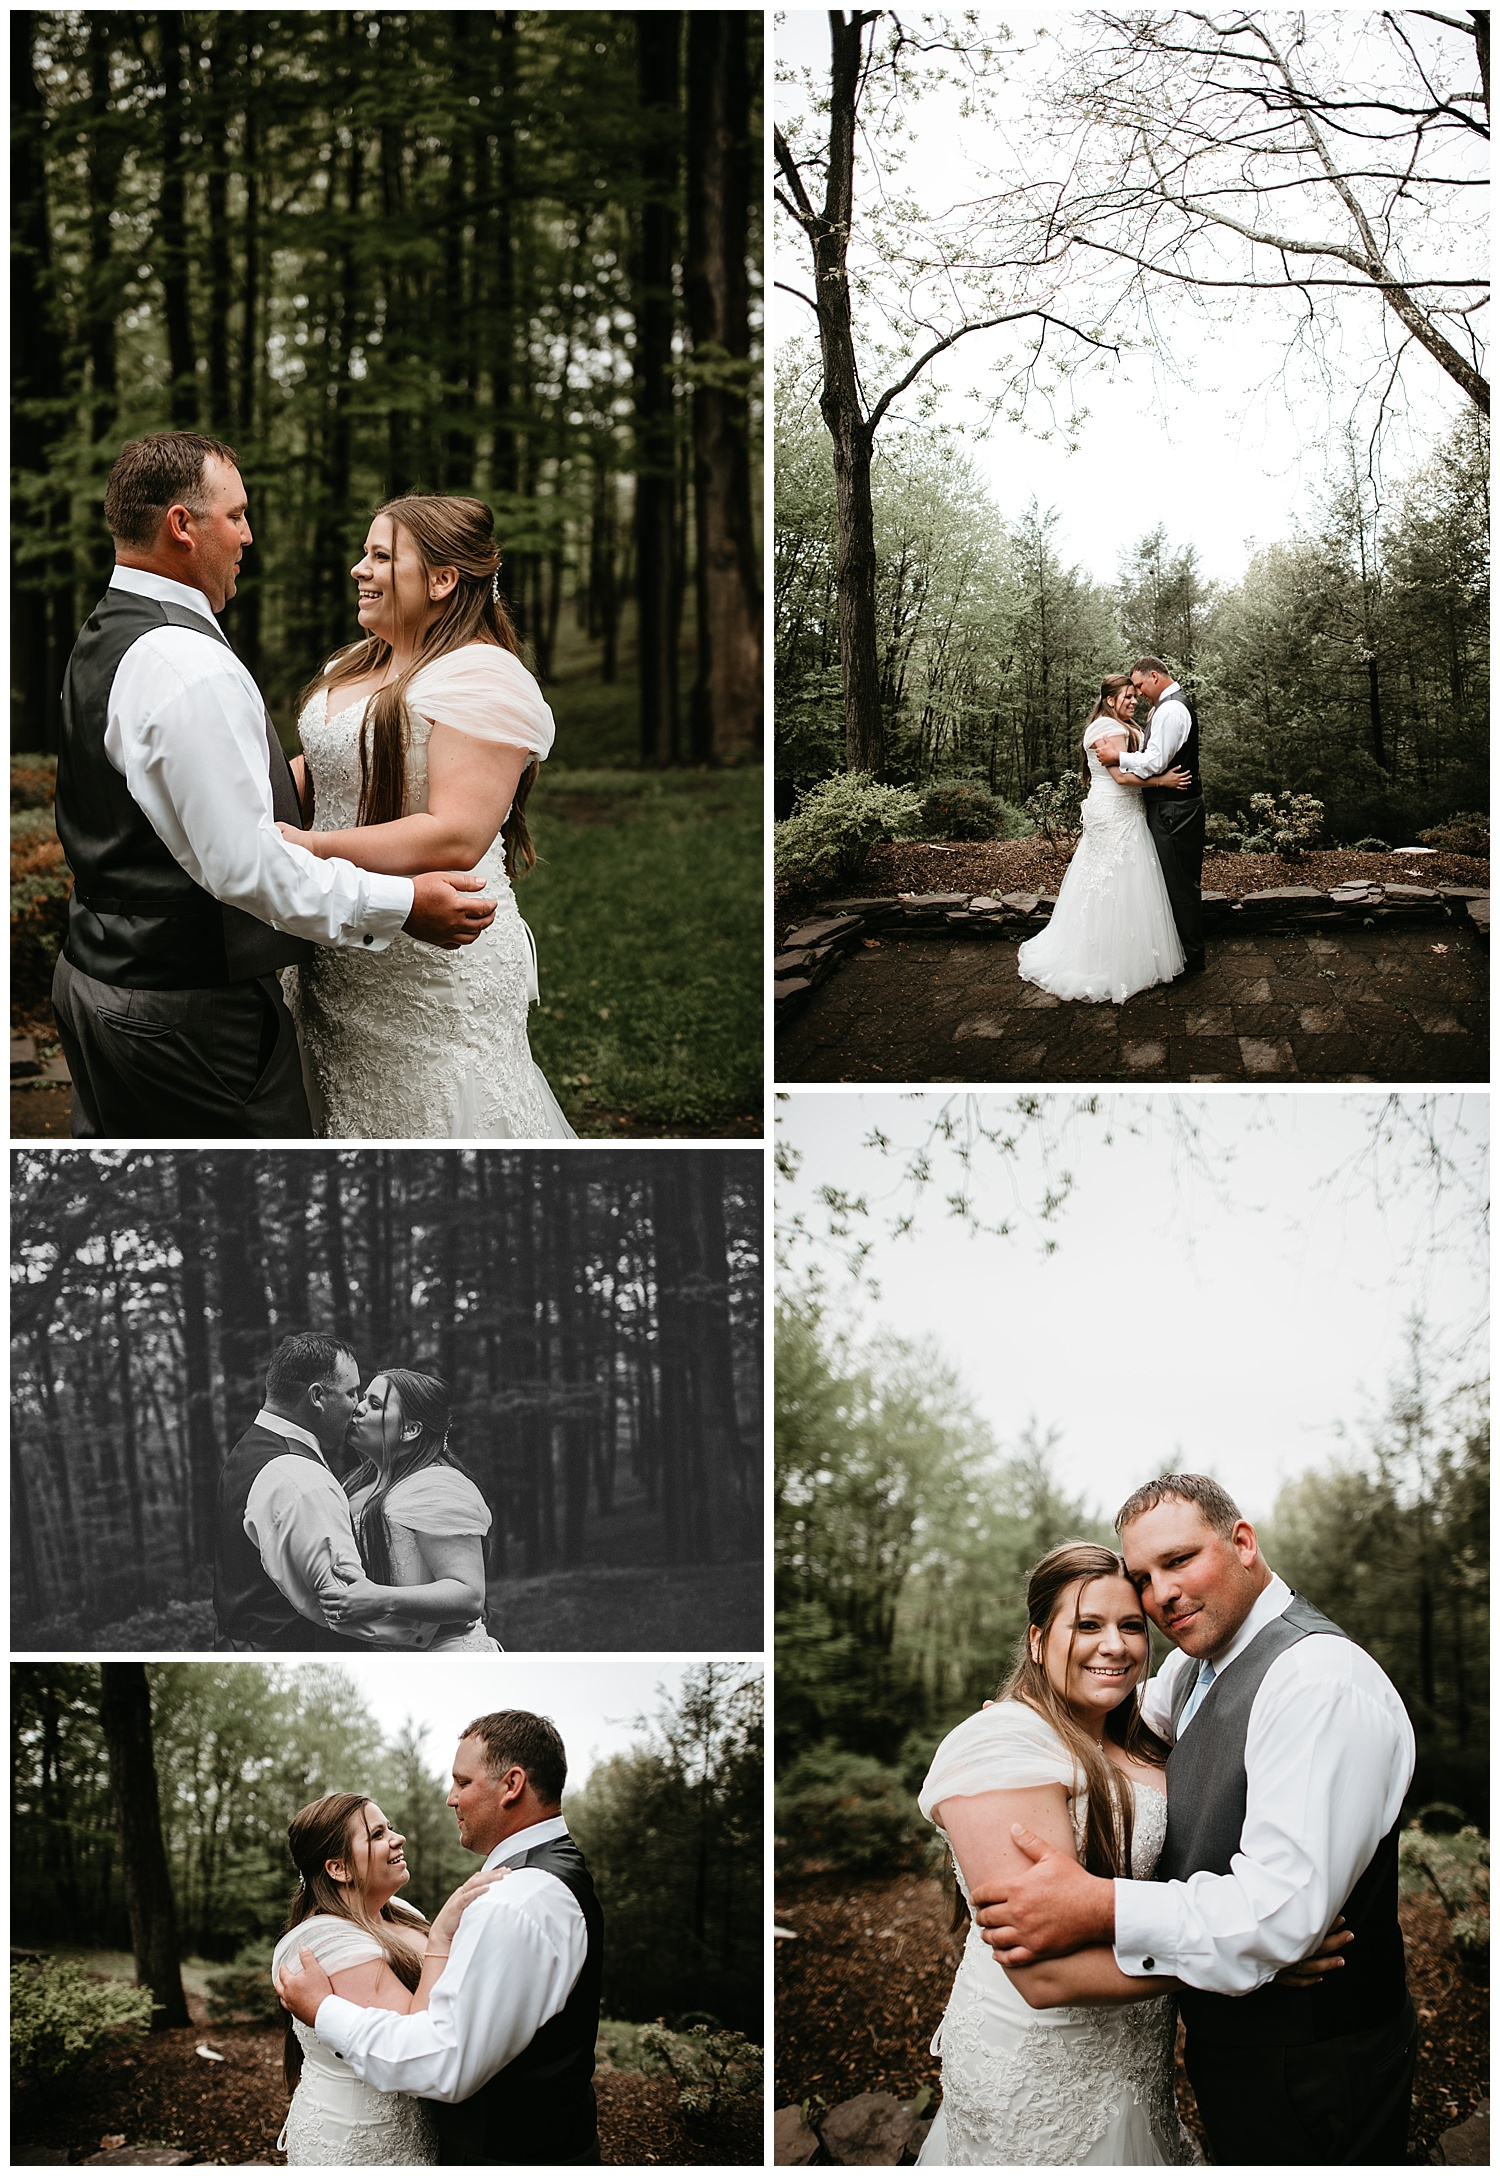 NEPA-wedding-photographer-at-the-Stroudsmoor-Country-Inn-Stroudsburg-PA_0011.jpg